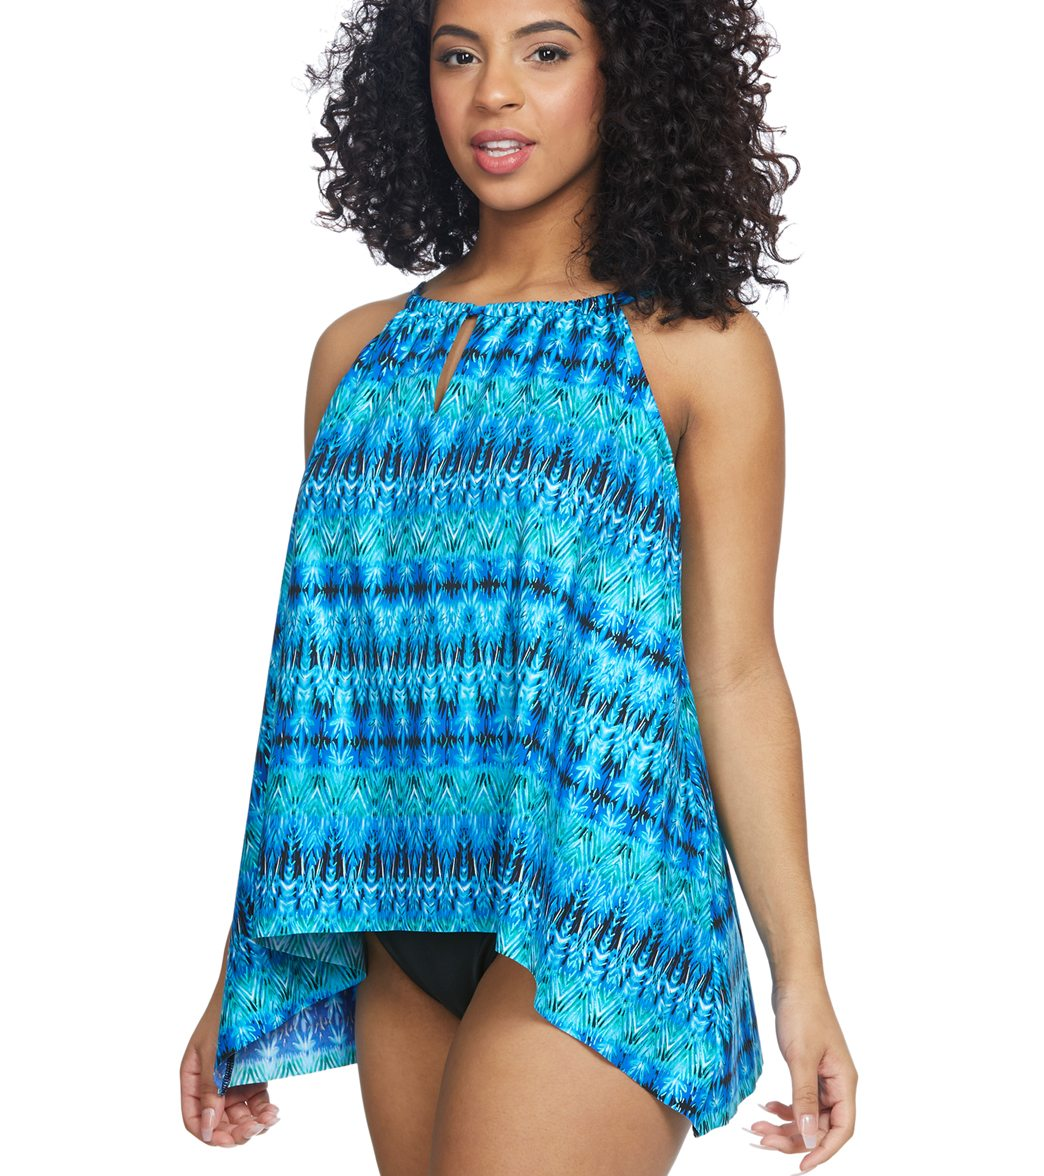 b4fd86cc077 Miraclesuit Cabana Chic Peephole Tankini Top (DD Cup) at SwimOutlet ...